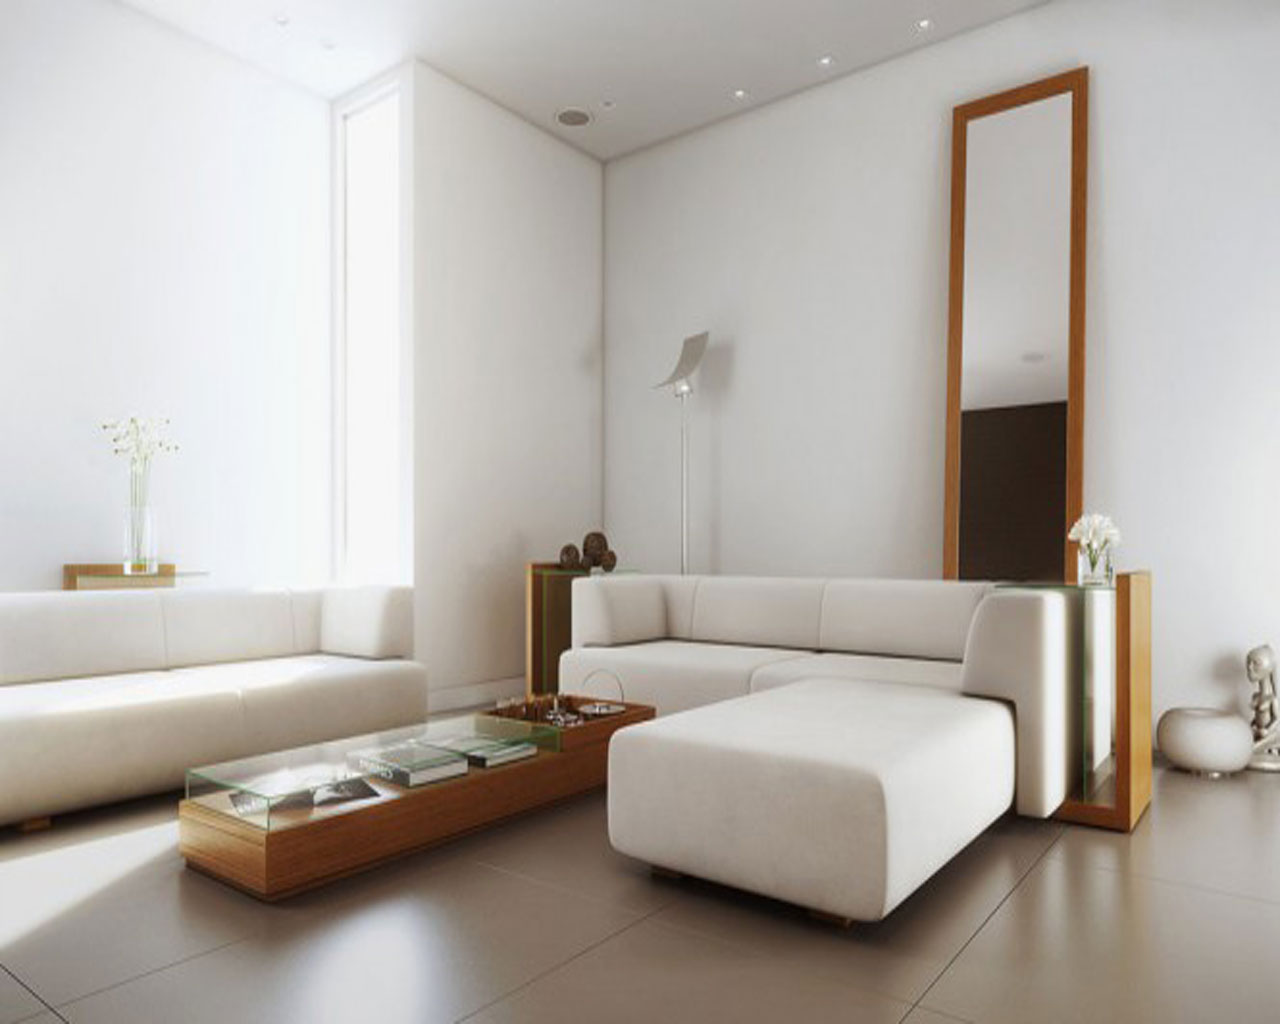 Simple living room designs dream house experience for Simplistic living room